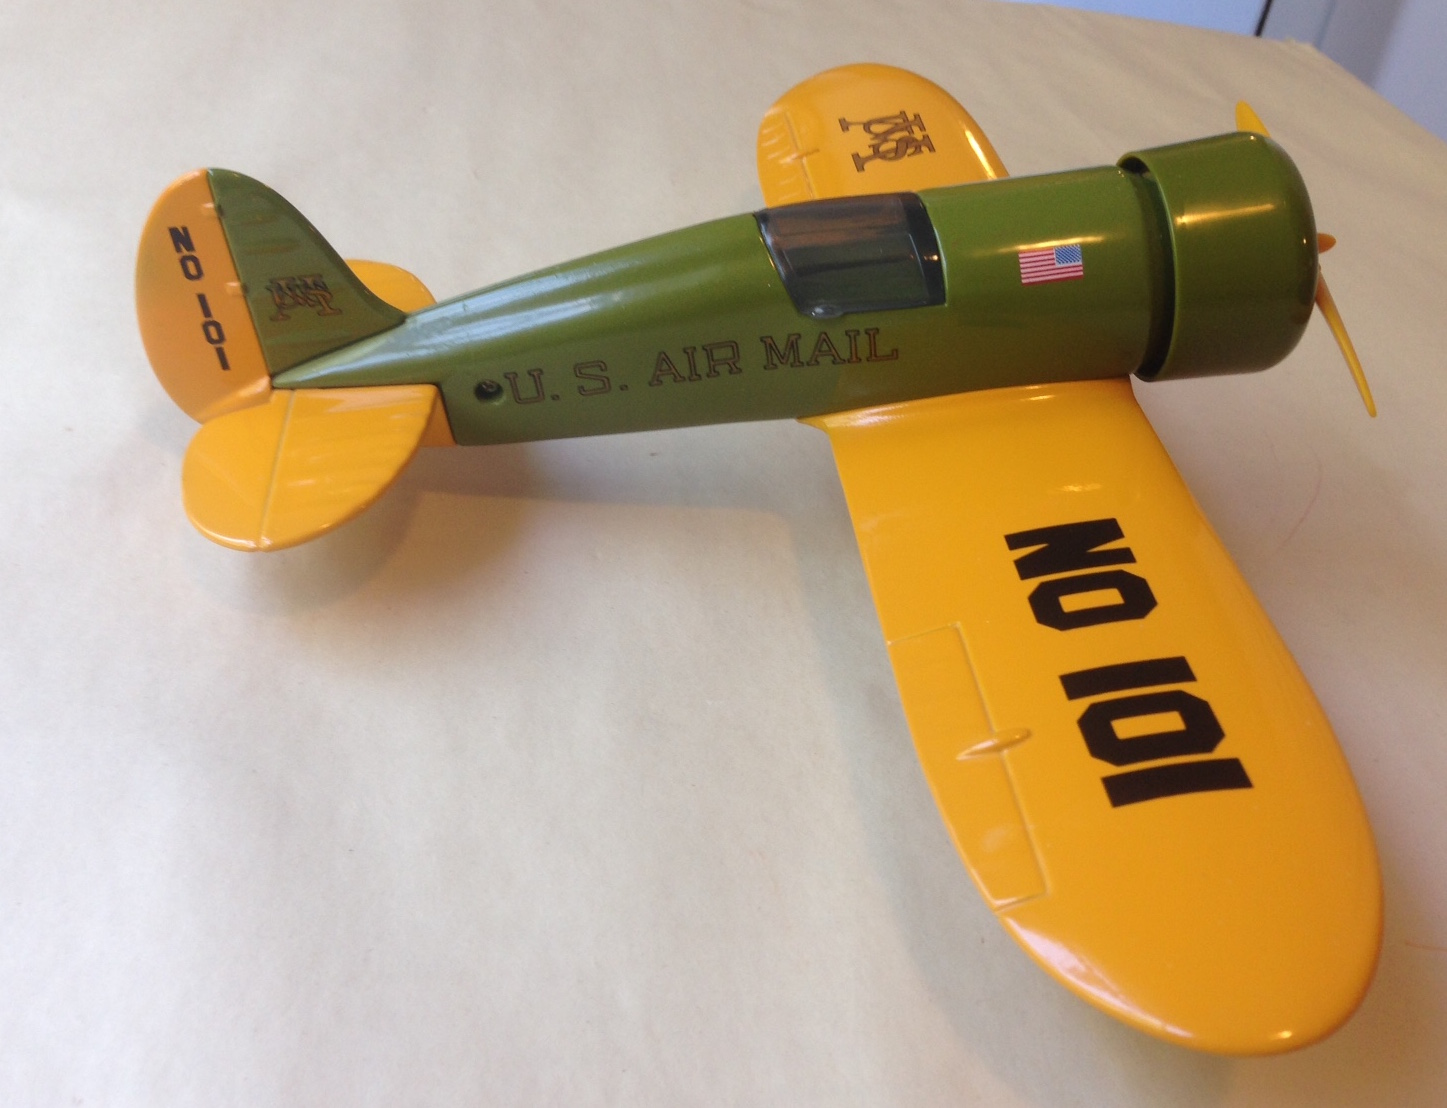 U.S. Mail # 101 Airplane Coin Bank 1:32